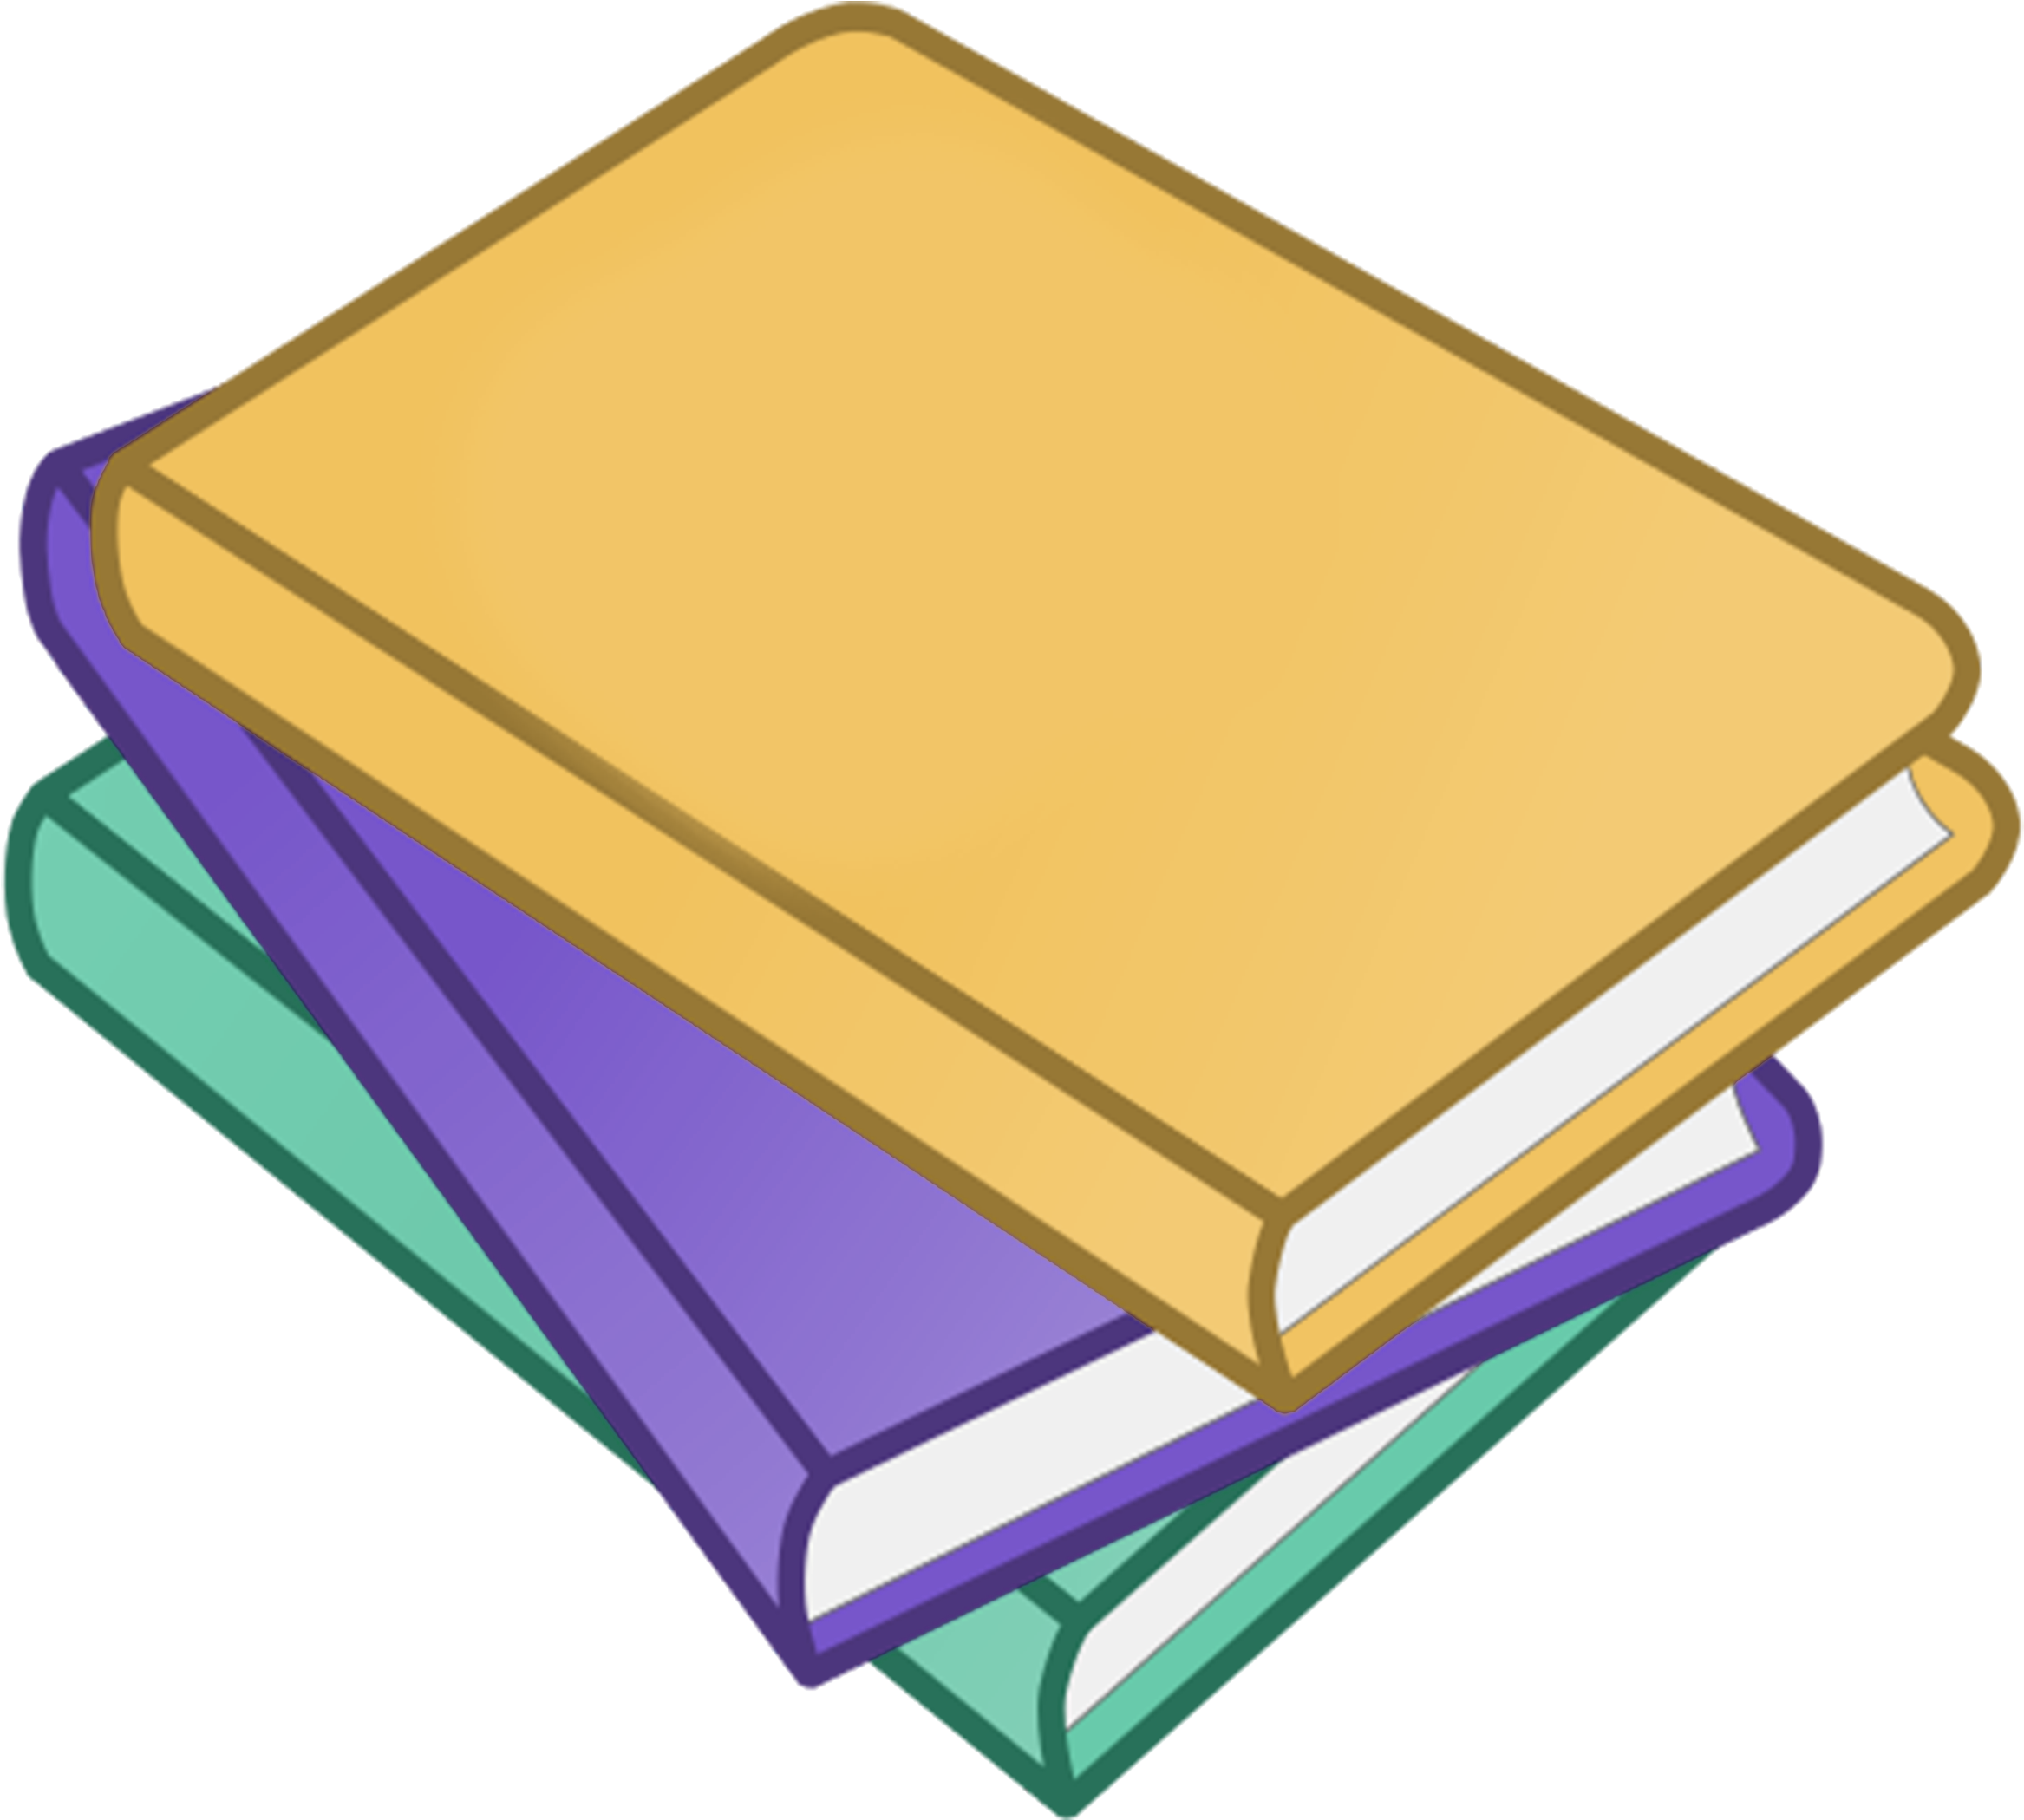 Messy Stack Of Books Transparent Background Book Clipart Png Download Full Size Clipart 3458029 Pinclipart